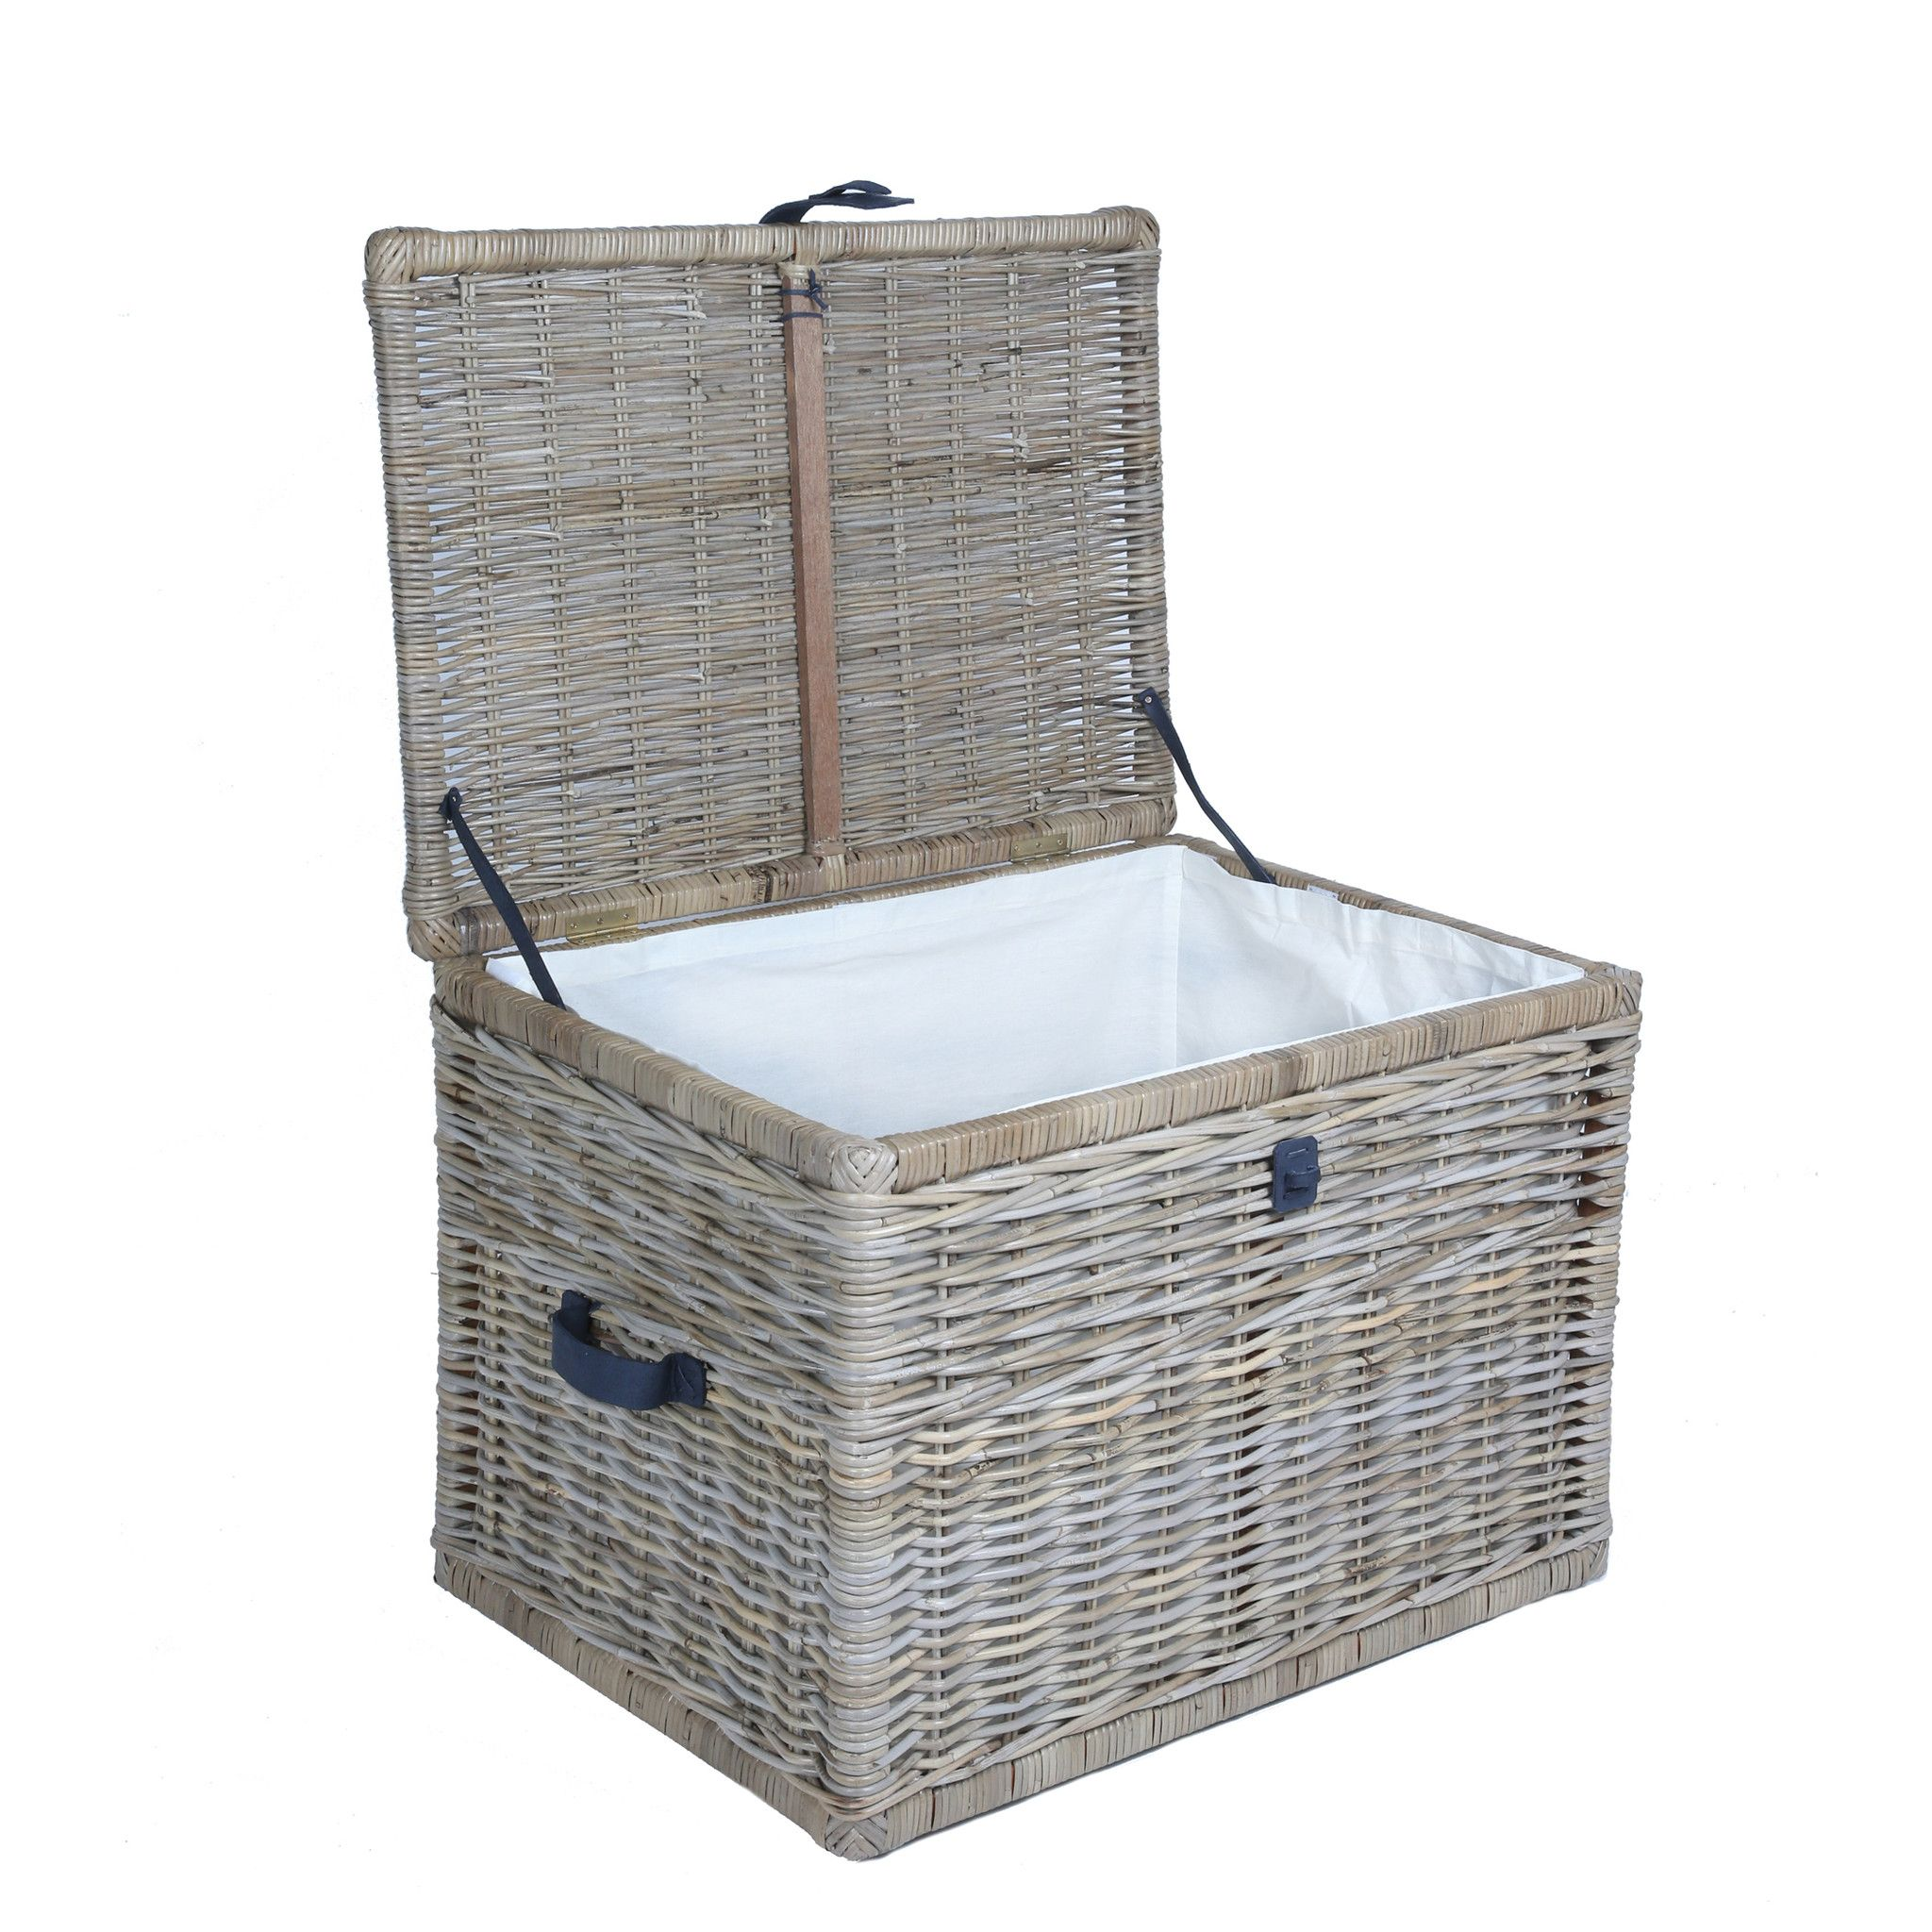 Deep Kubu Wicker Storage Trunk | Storage trunk, Storage and ...